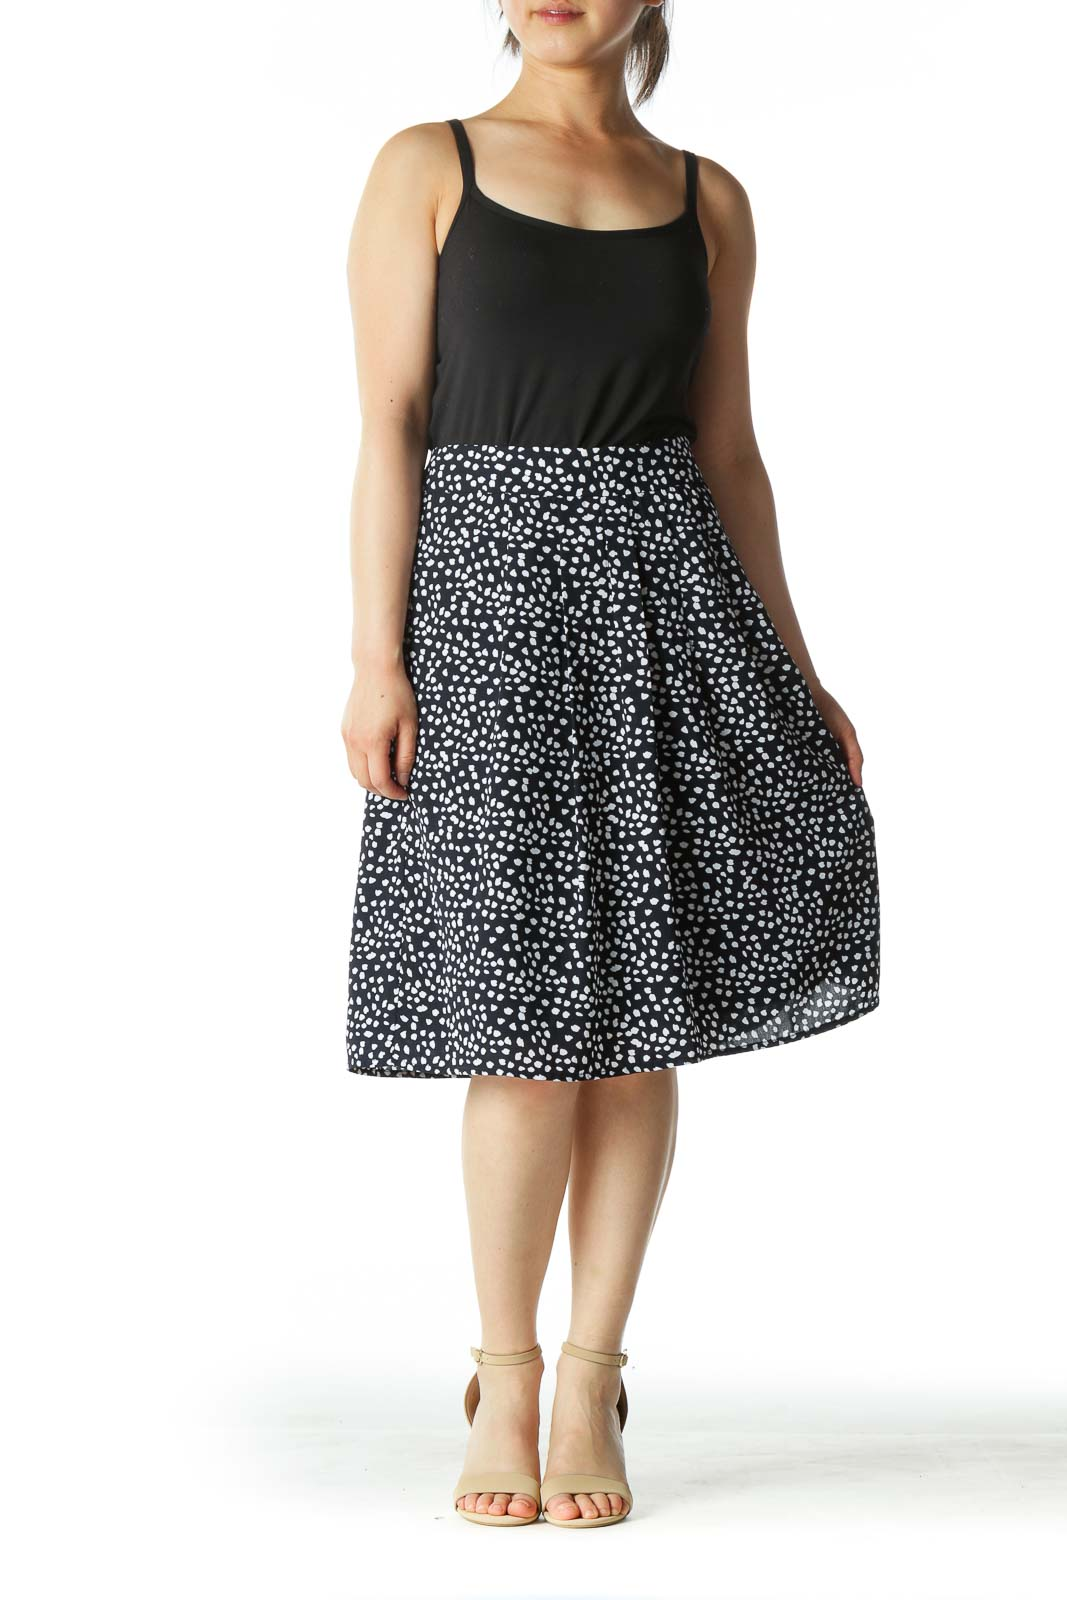 Black and White Polka Dot A-Line Skirt